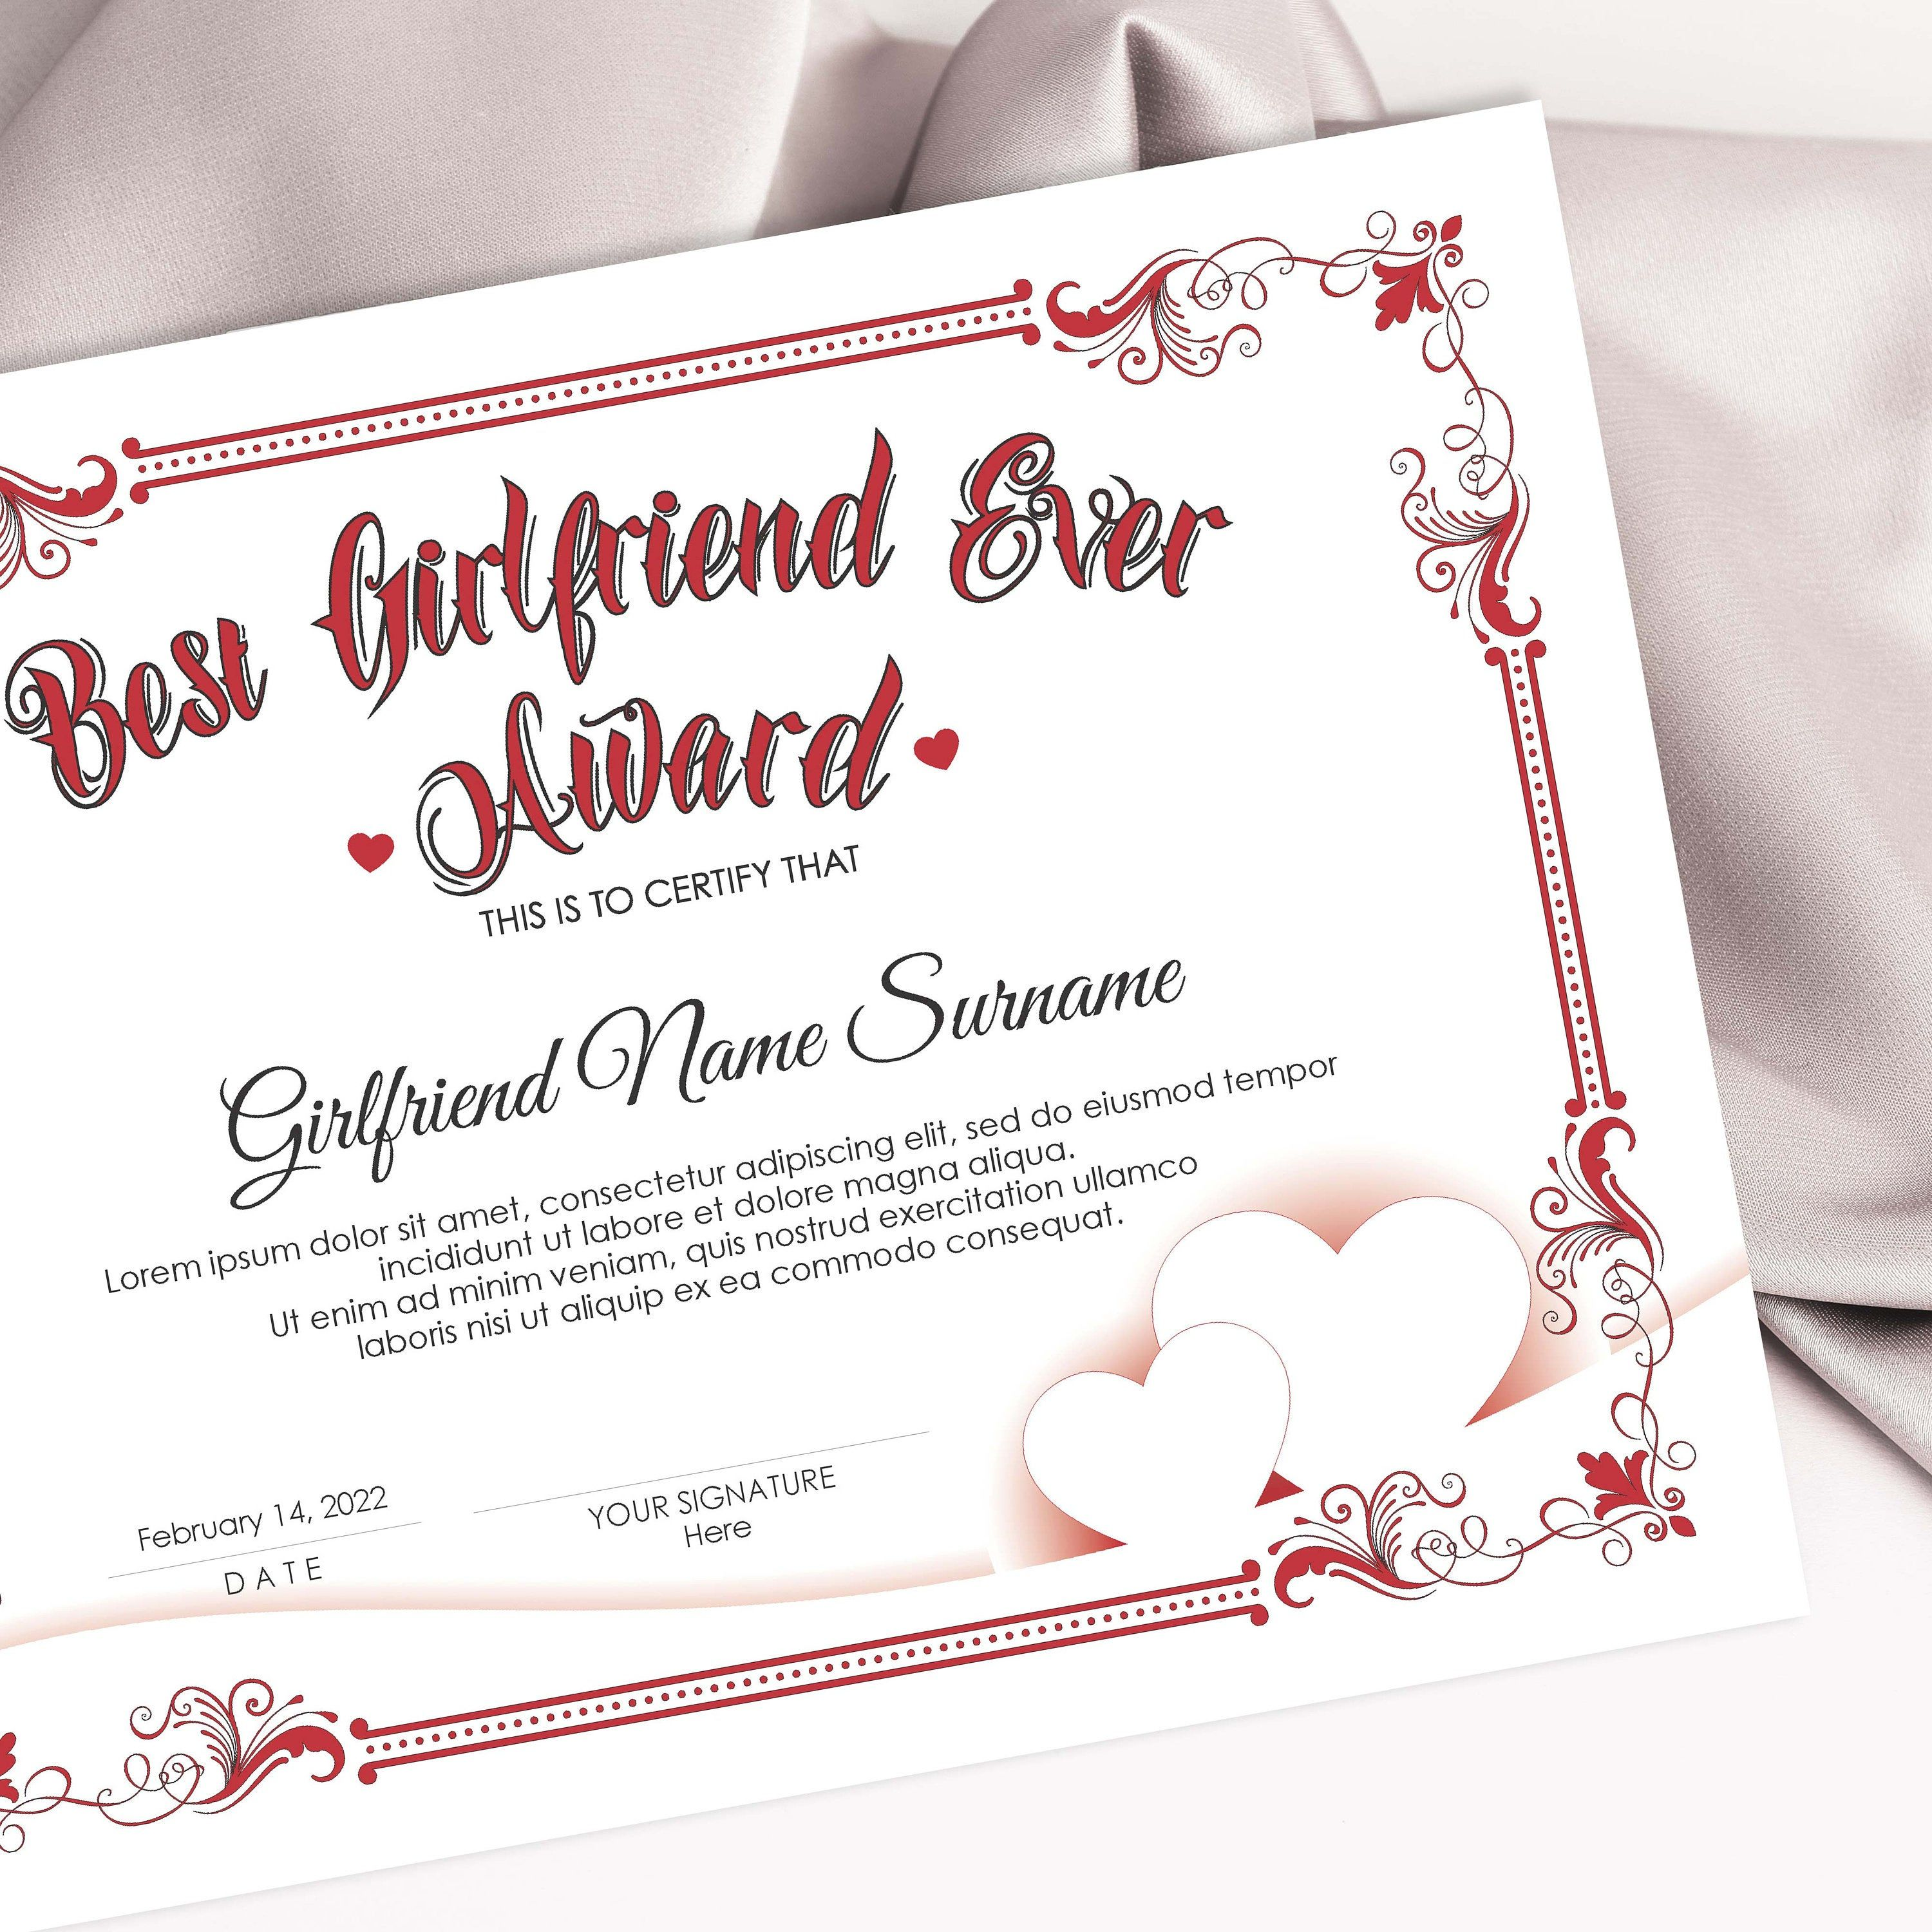 Editable Best Girlfriend Ever Award Template Valentines Day Gift For Her Modern Elegant Certificate Design Printable Certificate Download Award Template Best Boyfriend Ever Certificate Templates Girlfriend of the year award